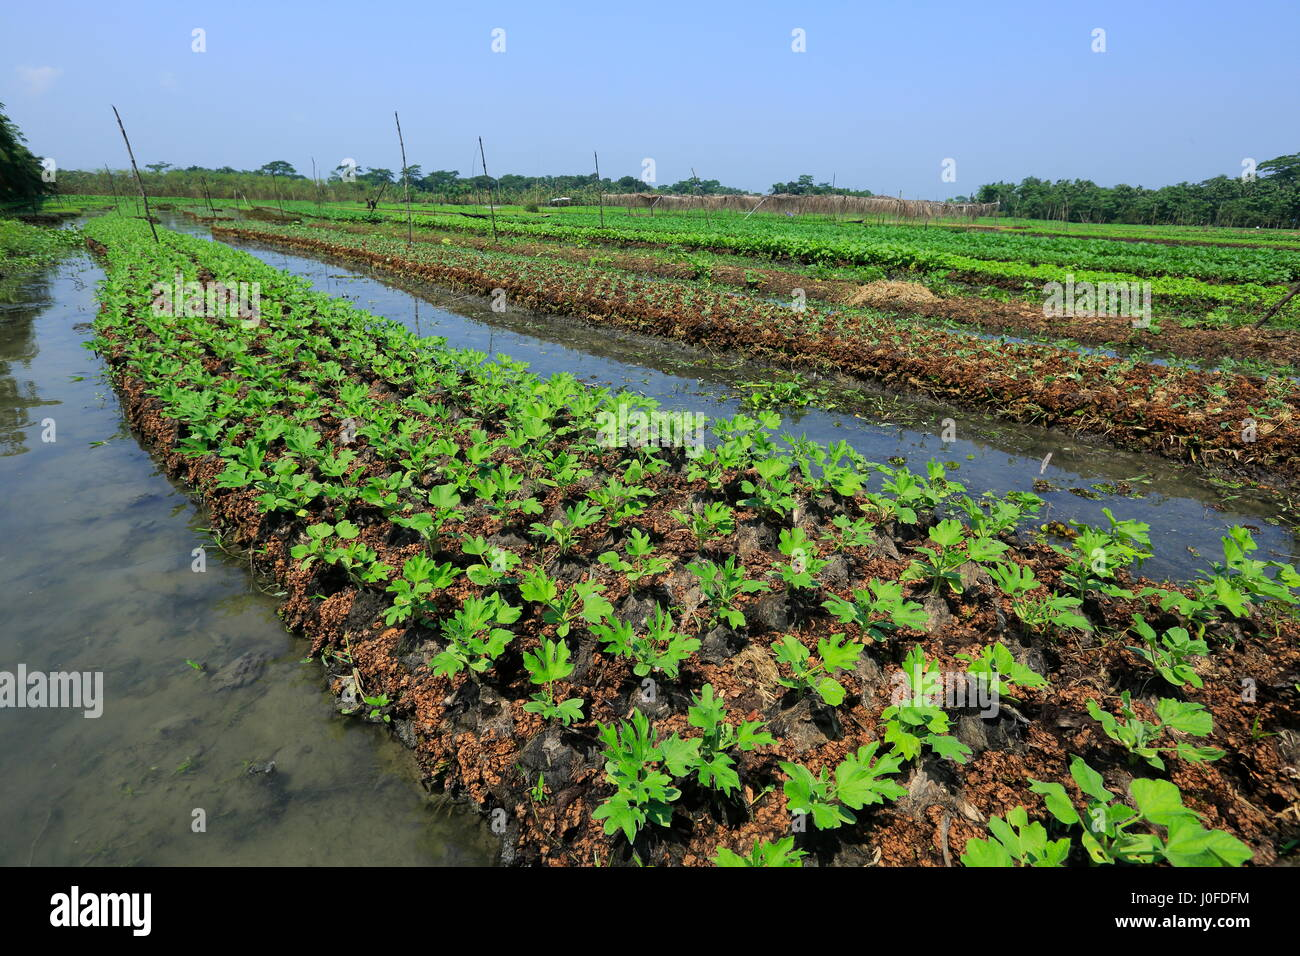 ve ables growing on floating seedbeds made from water hyacinth at J0FDFM